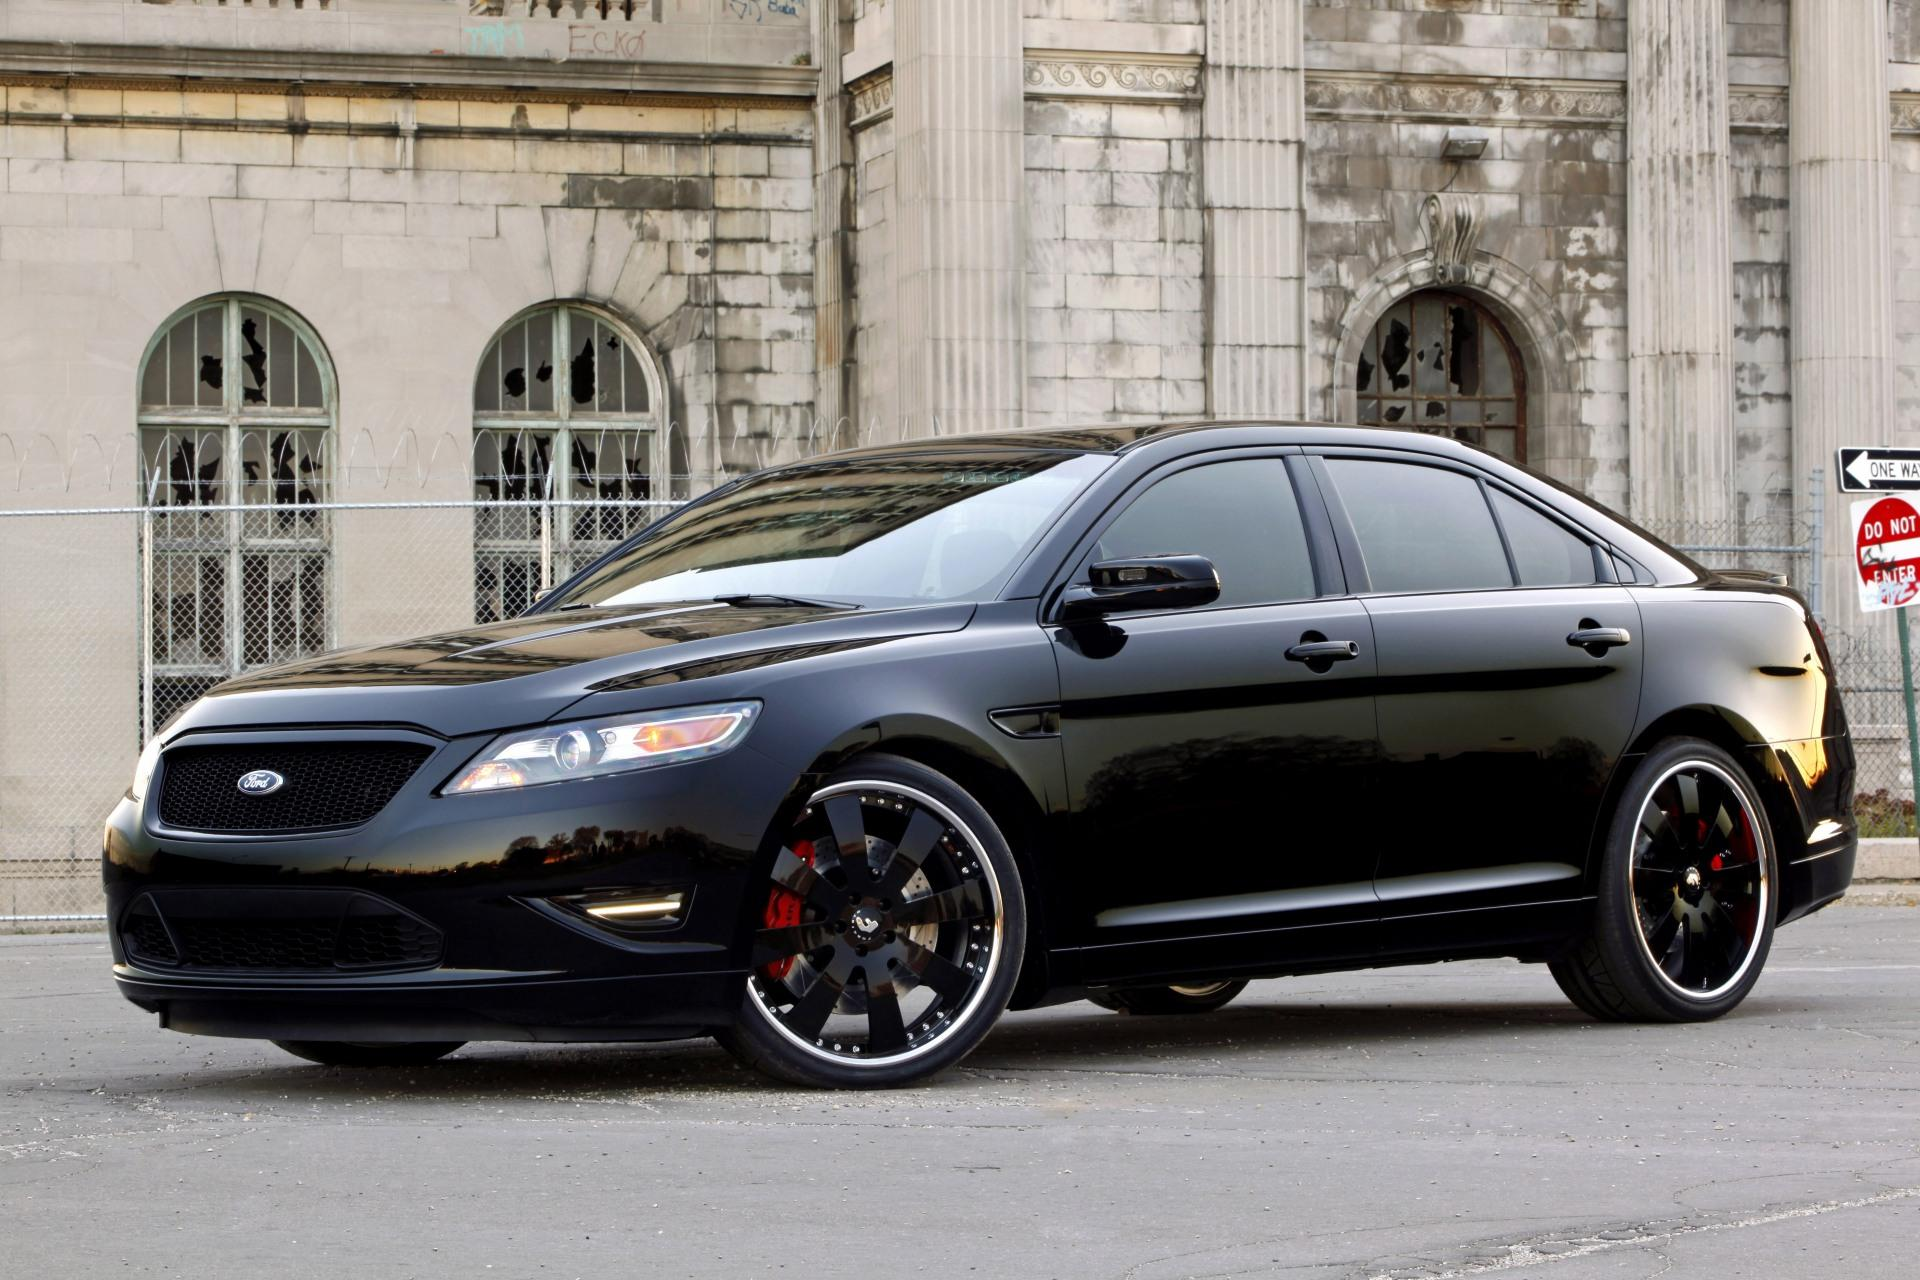 2015 Ford Fusion Rims >> 2011 Ford Police Interceptor Stealth News and Information